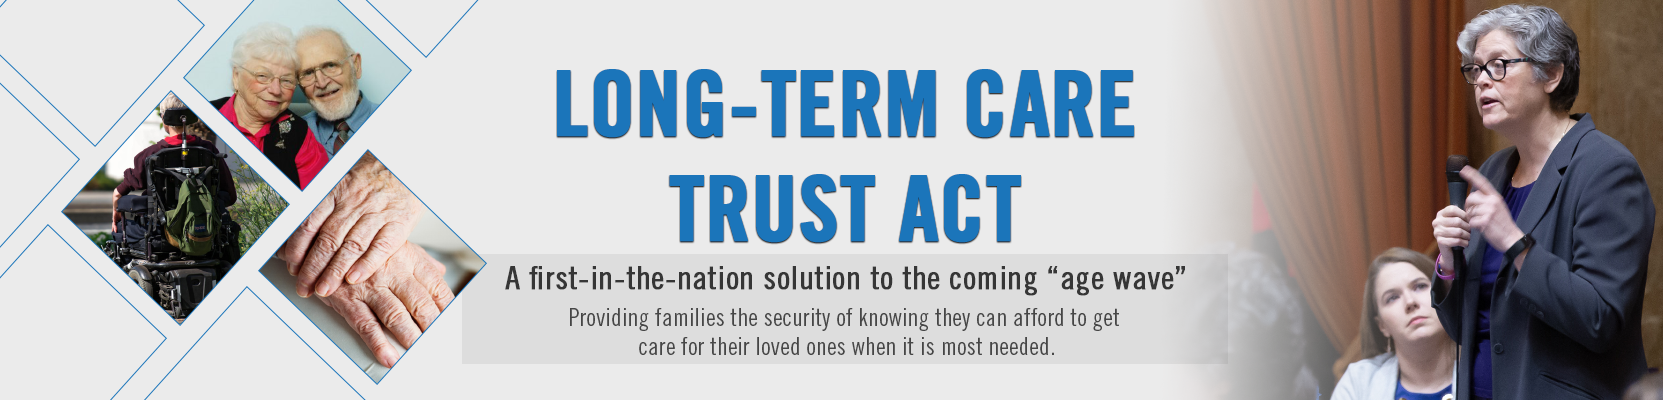 Long-Term Care Trust Act